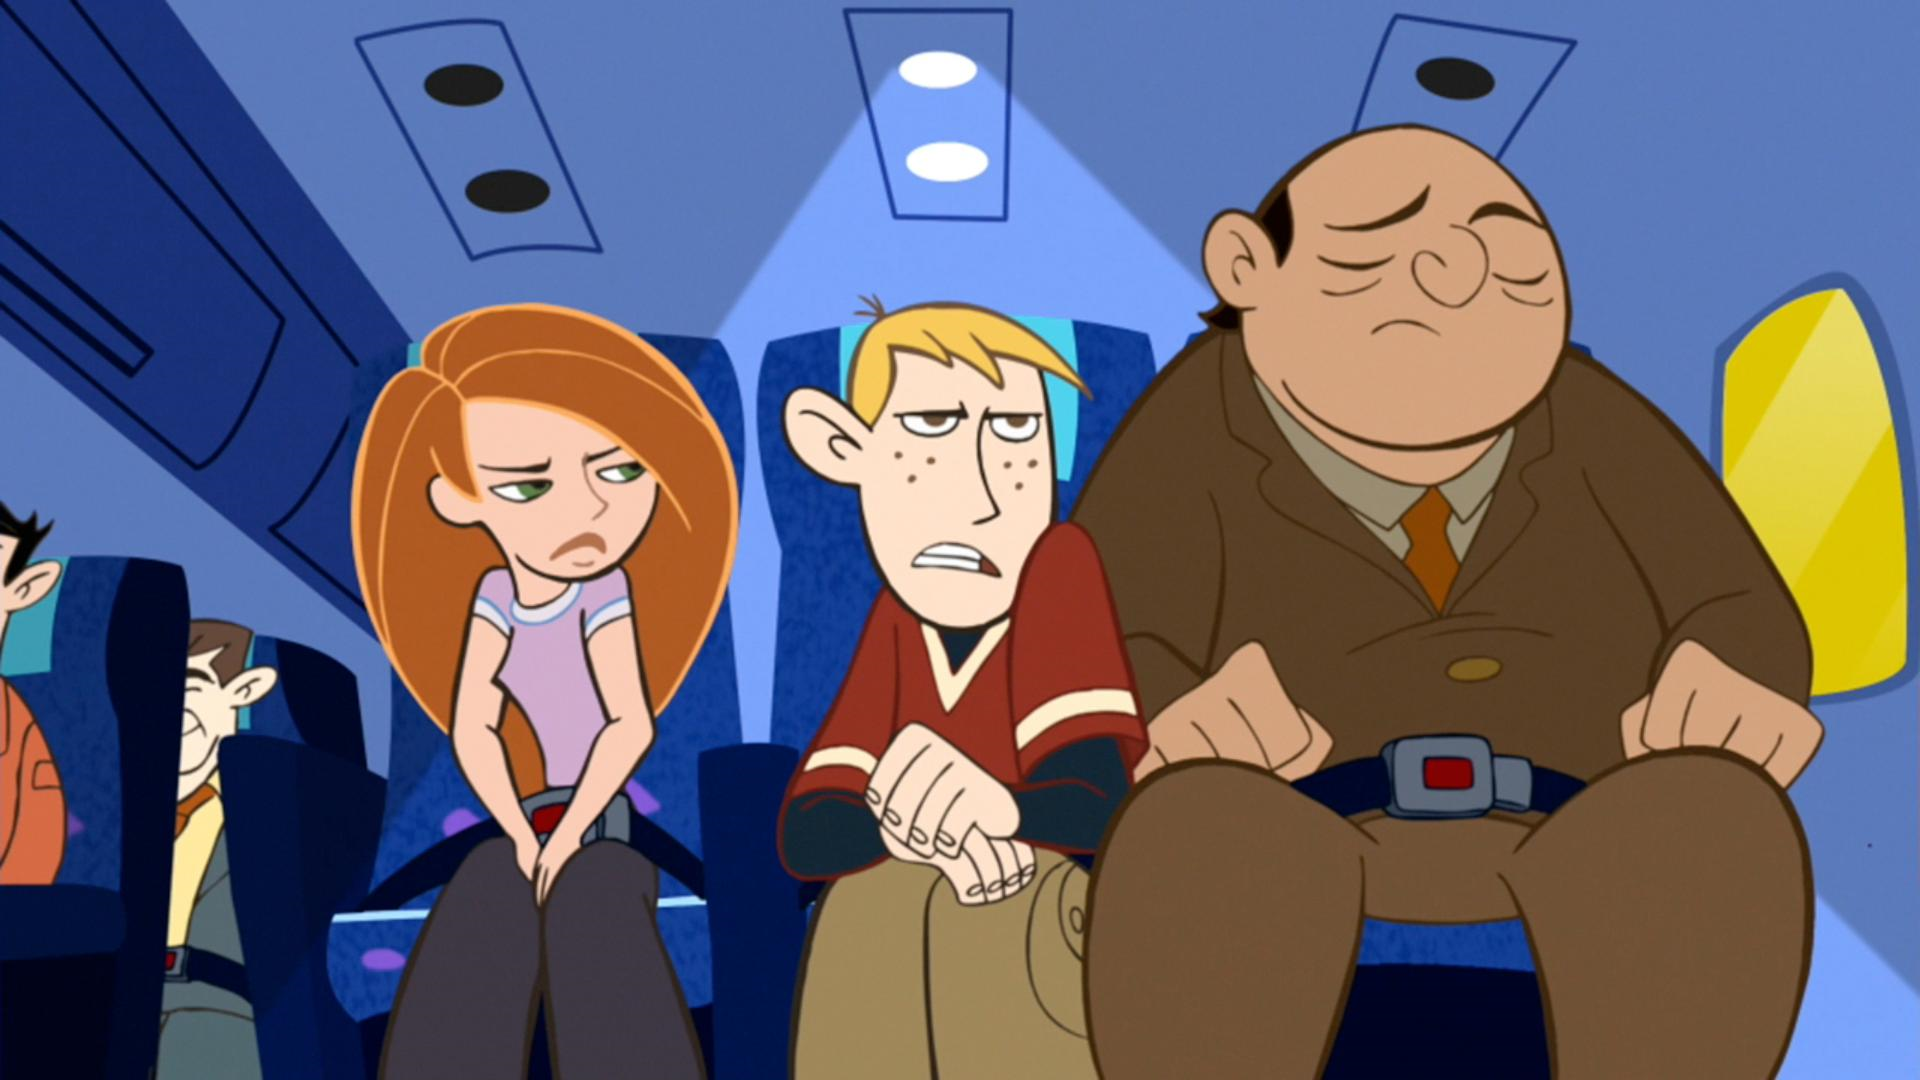 File:Kim and ron on a plane.png